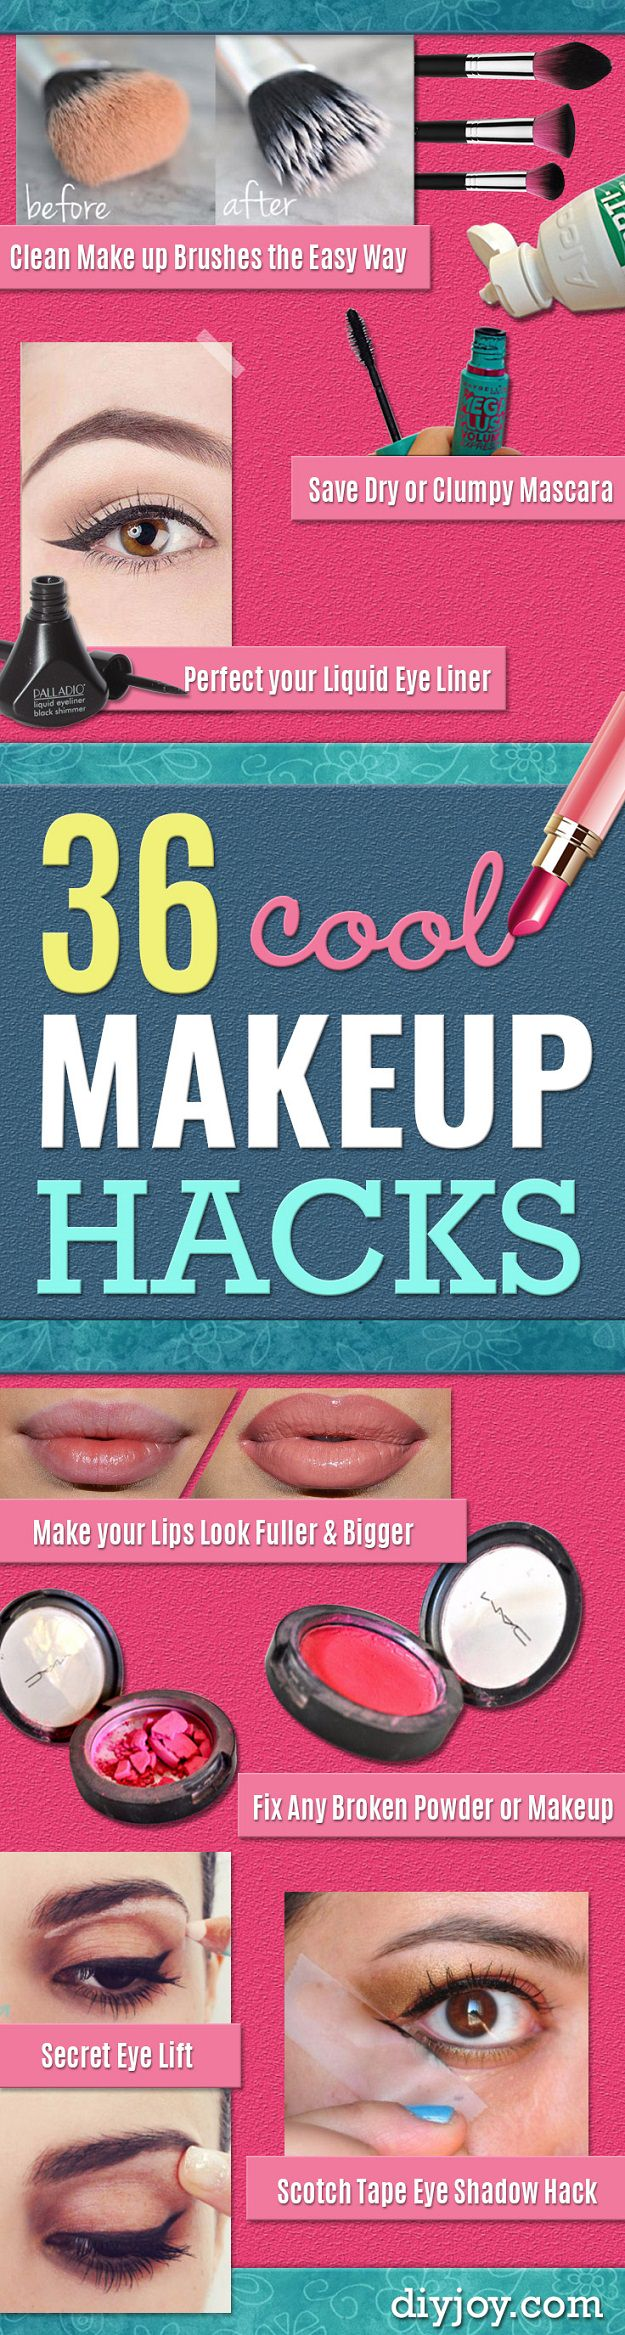 These clever makeup hacks will make you look stunning easily and in less time.